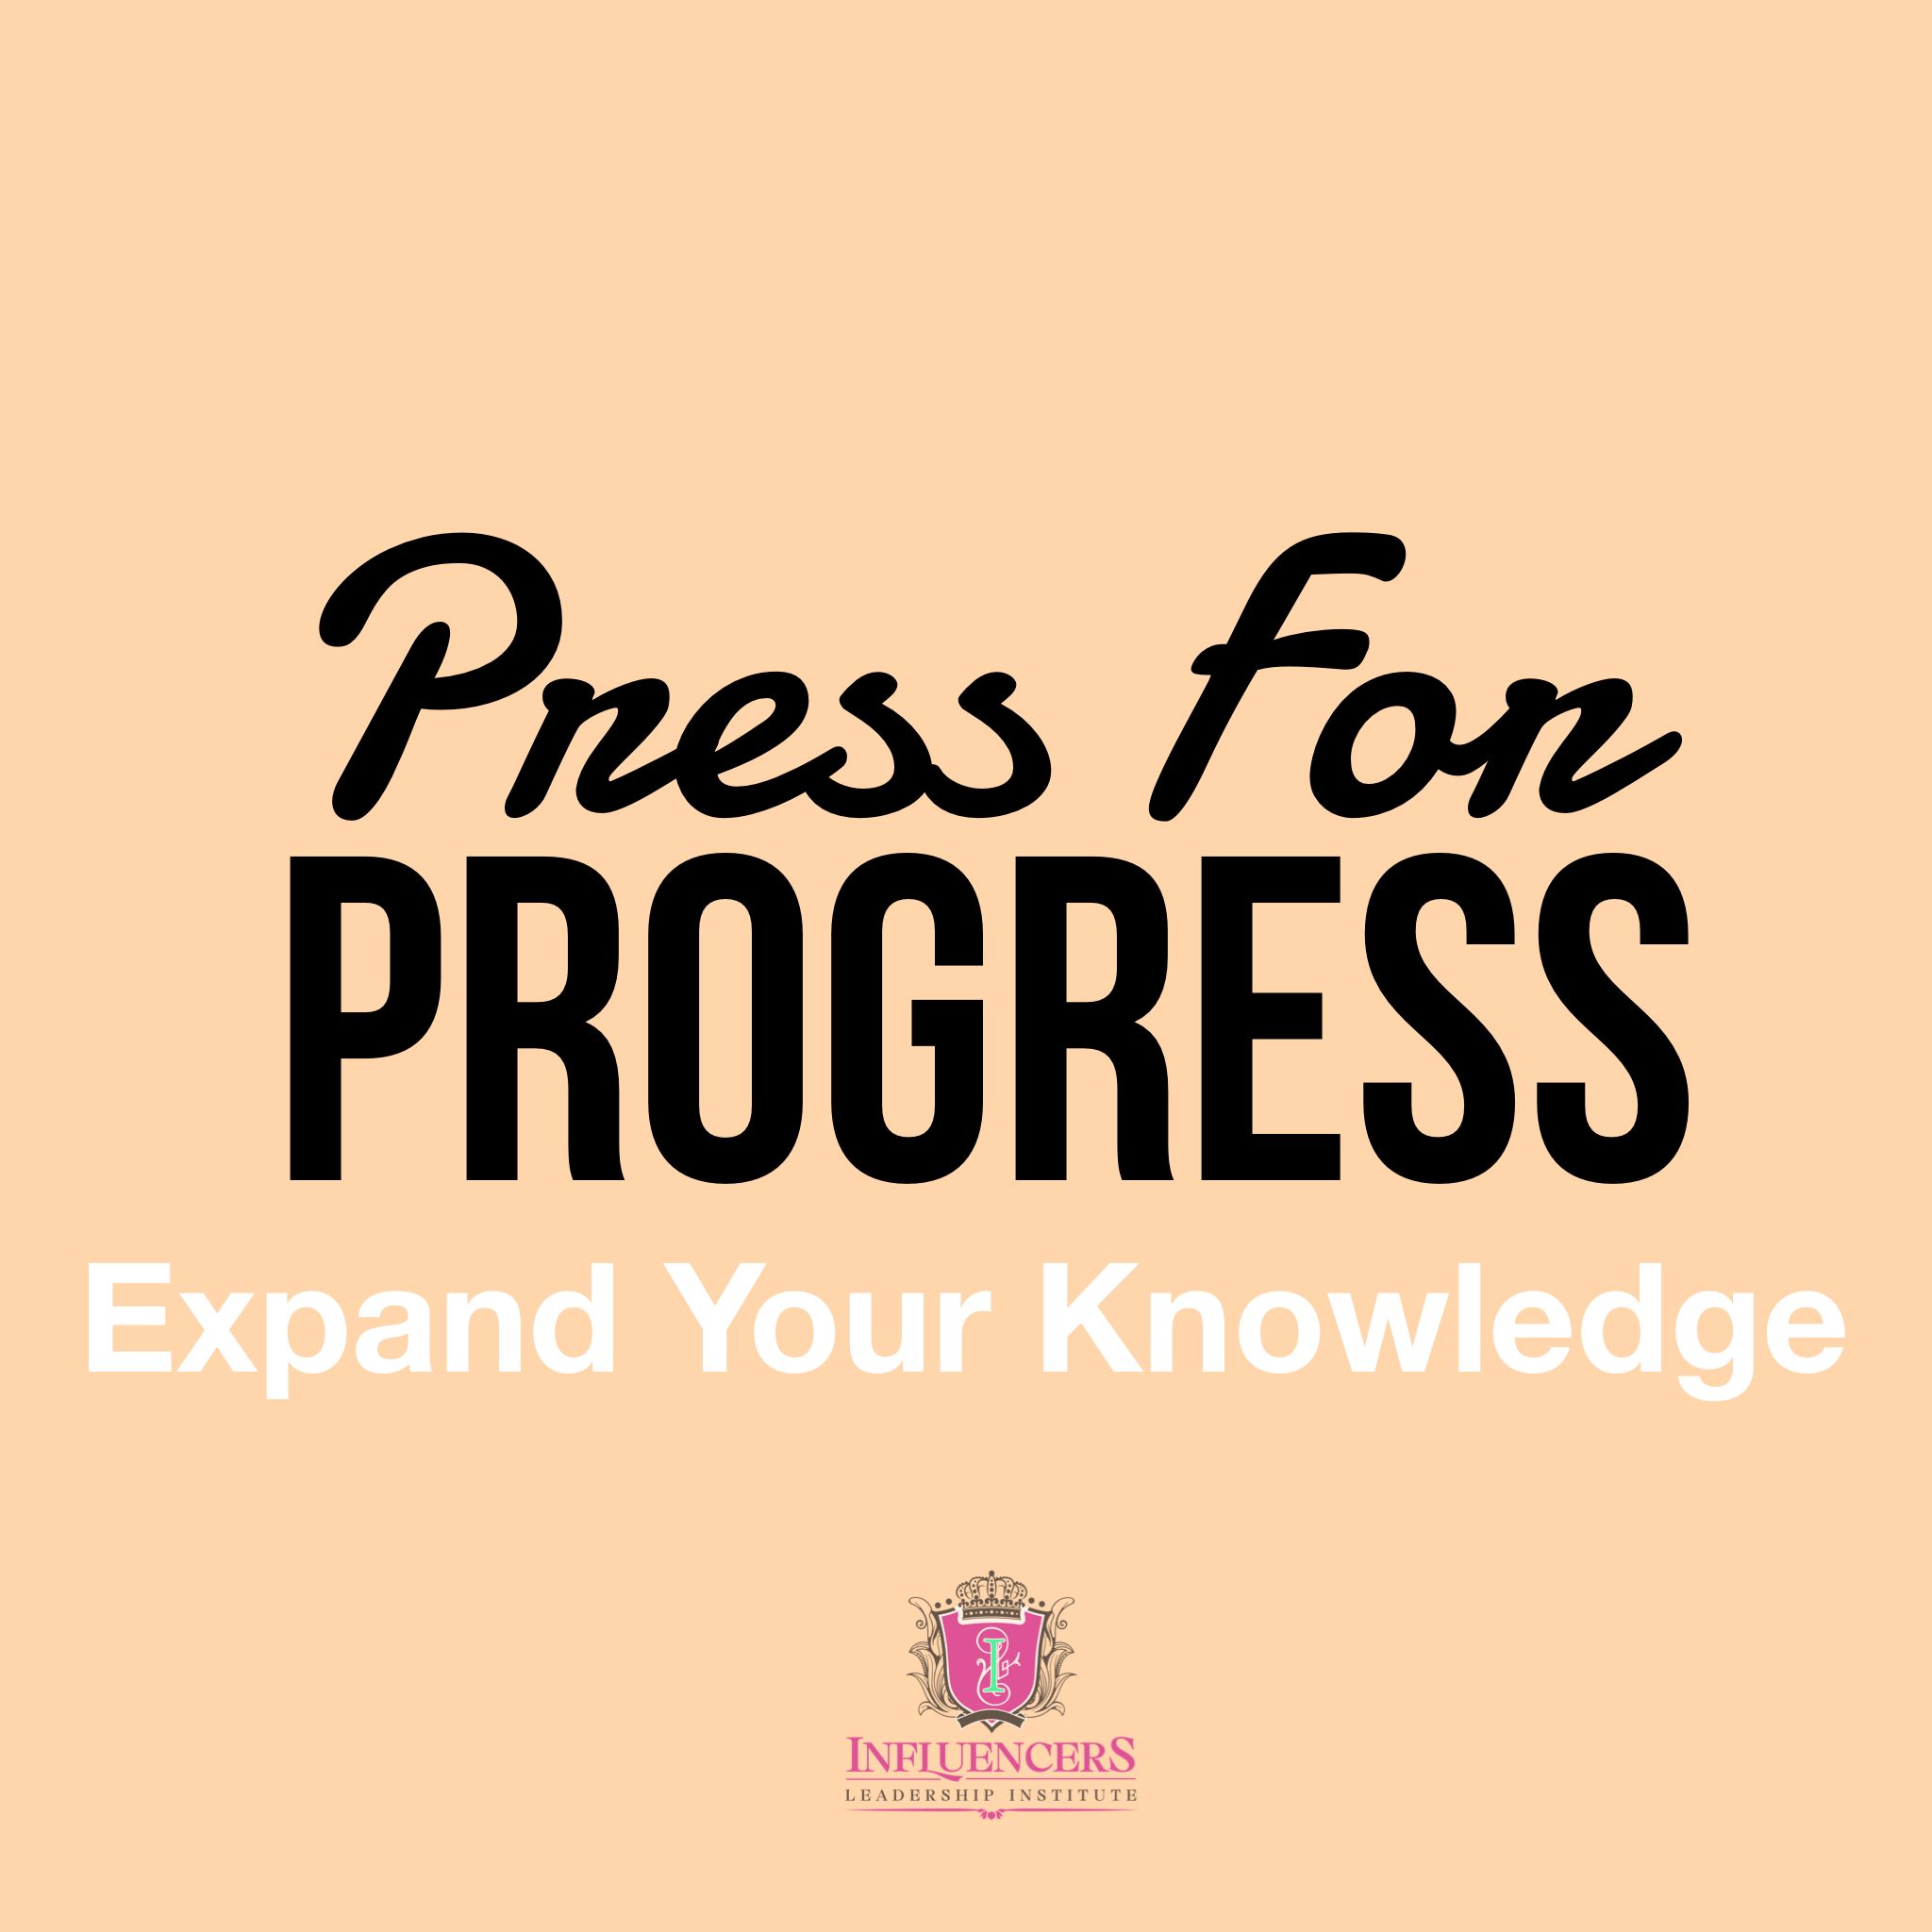 Press For Progress: Expand Your Knowledge